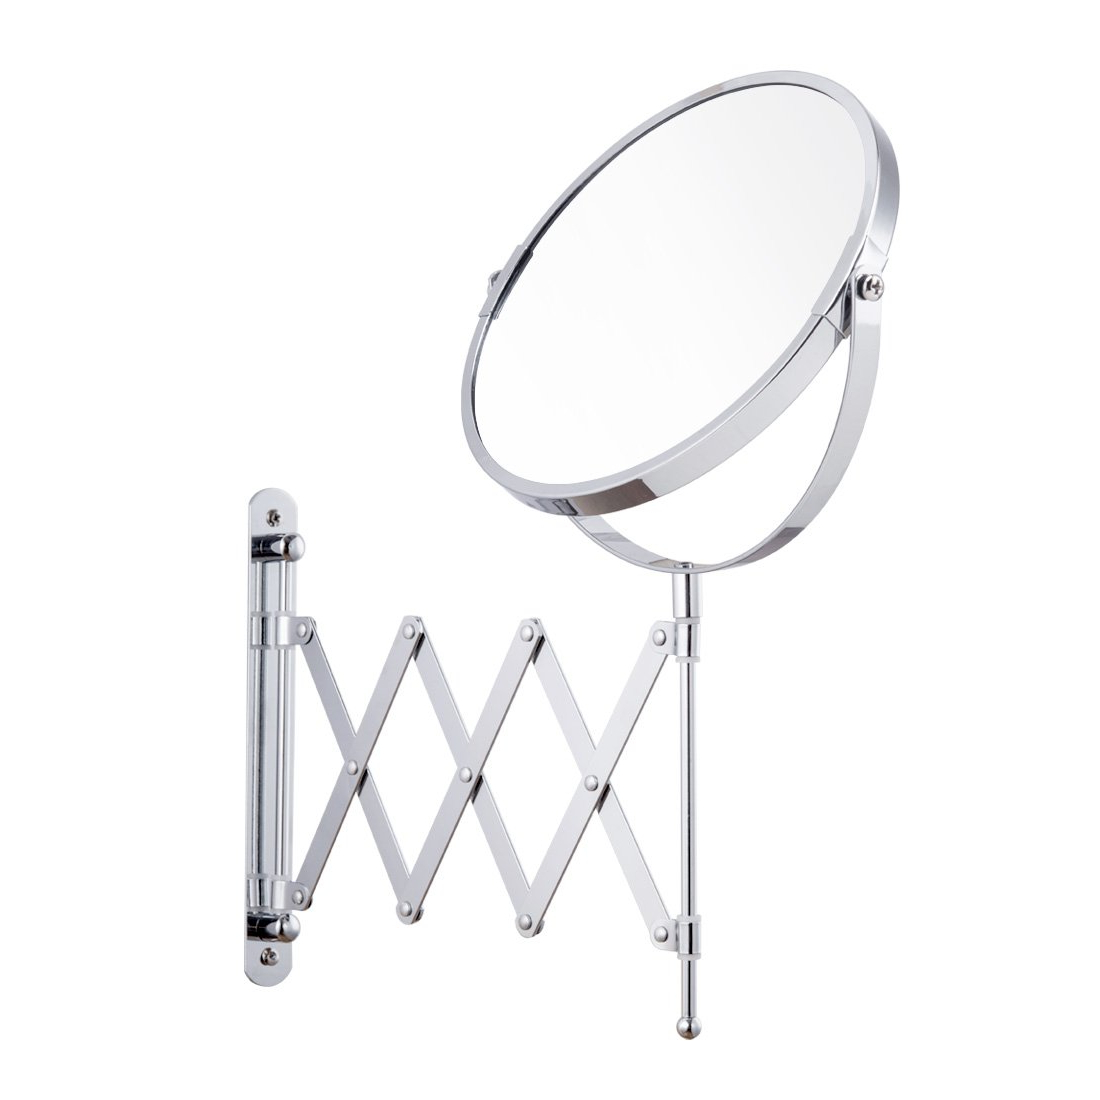 Preferred Accordion Wall Mirrors In Firmloc Wall Mounted Magnification Makeup Mirror 1X/5X Vanity Double Side Extendable Accordion (View 11 of 20)